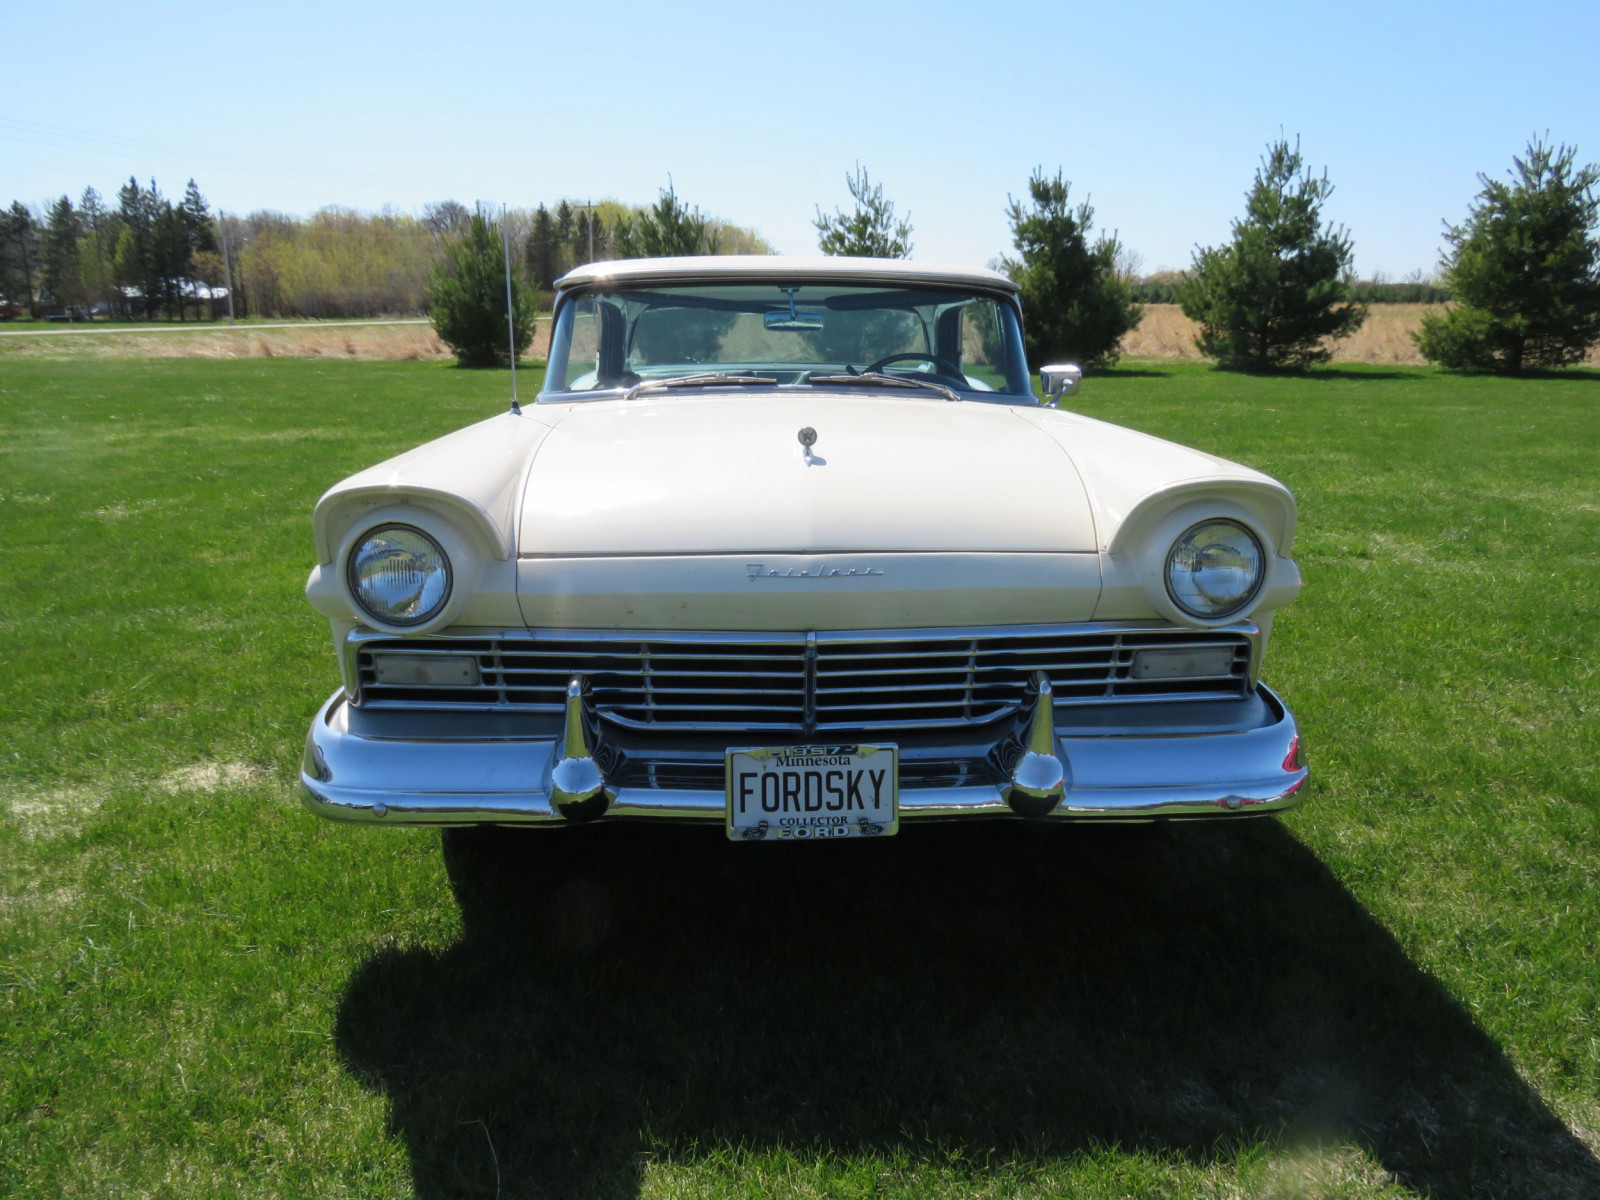 1957 Ford Fairlane 500 Skyliner Retractable Hardtop - Image 2